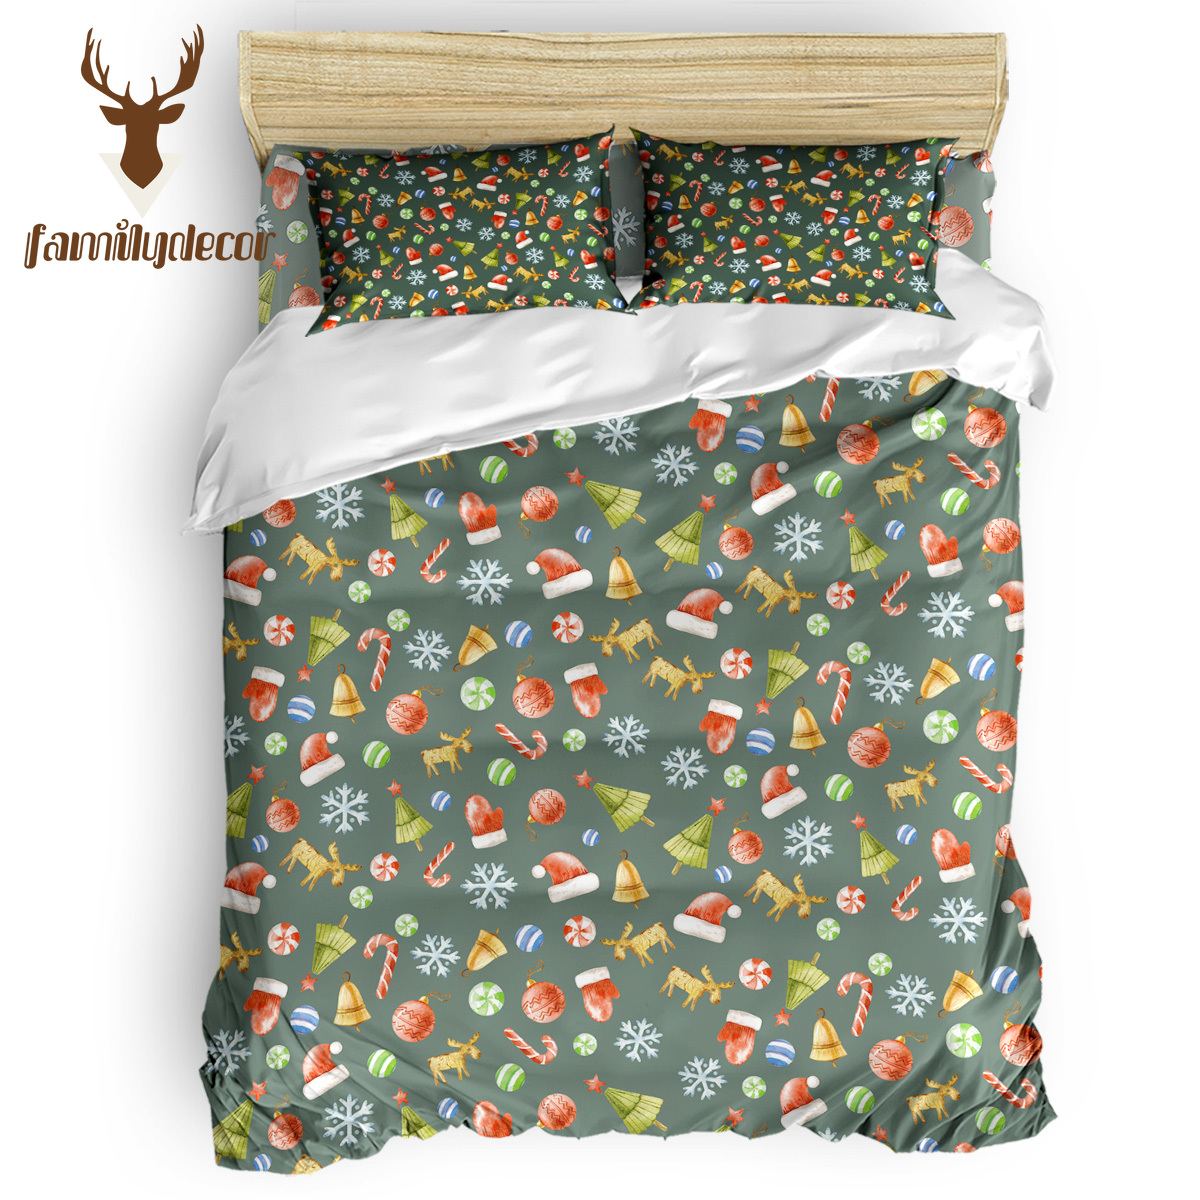 Family Decor Merry Christams Happy New Year Santa Snonwman Present Bedding Sets Duvet Set Covers 3 Piece Bedding Sets National